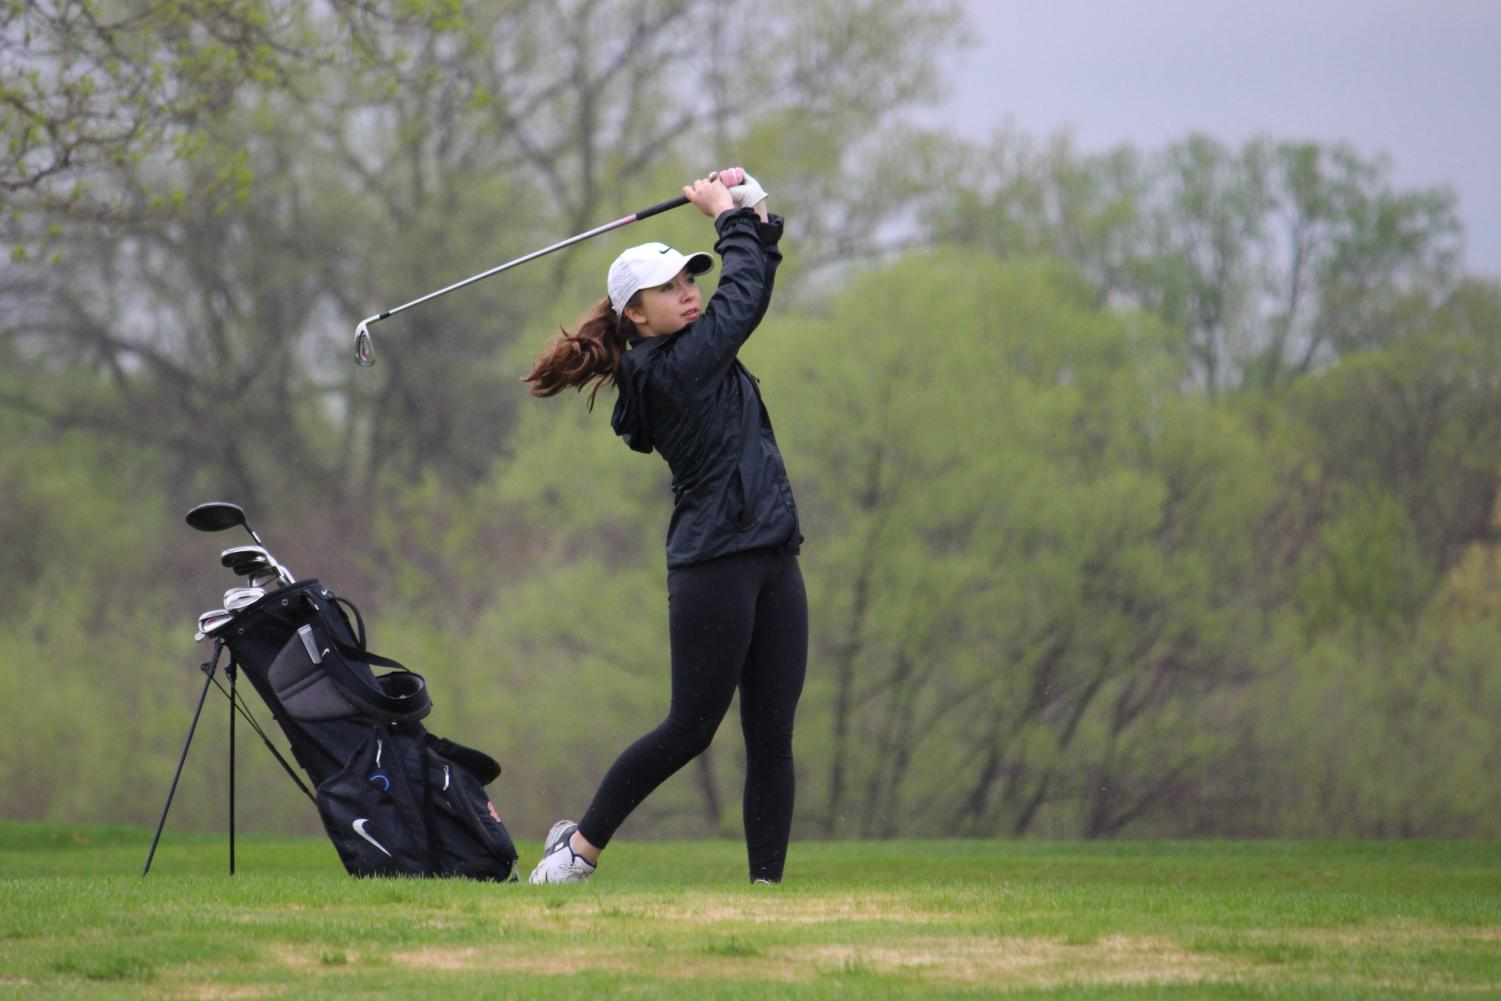 Freshman Maia Seidel hits an approach shot during a match May 9 at Brookview Golf Course. The next varsity match is 7:30 a.m. May 14 at Rush Creek.